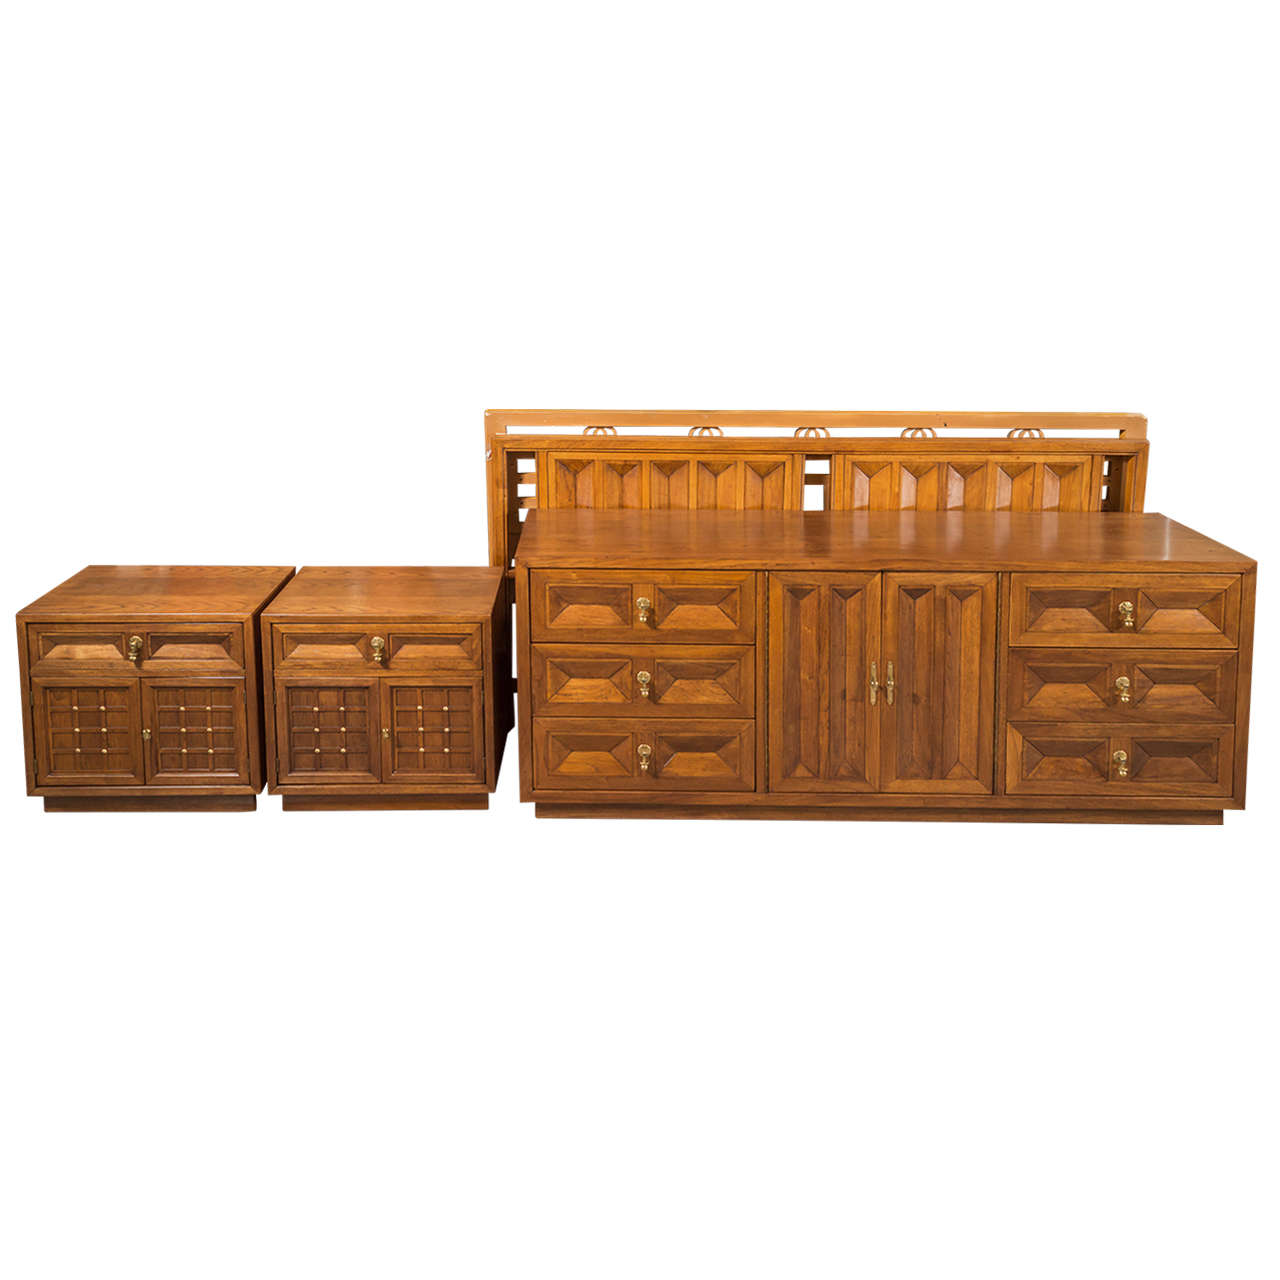 American of martinsville spanish revival walnut king for American martinsville bedroom furniture